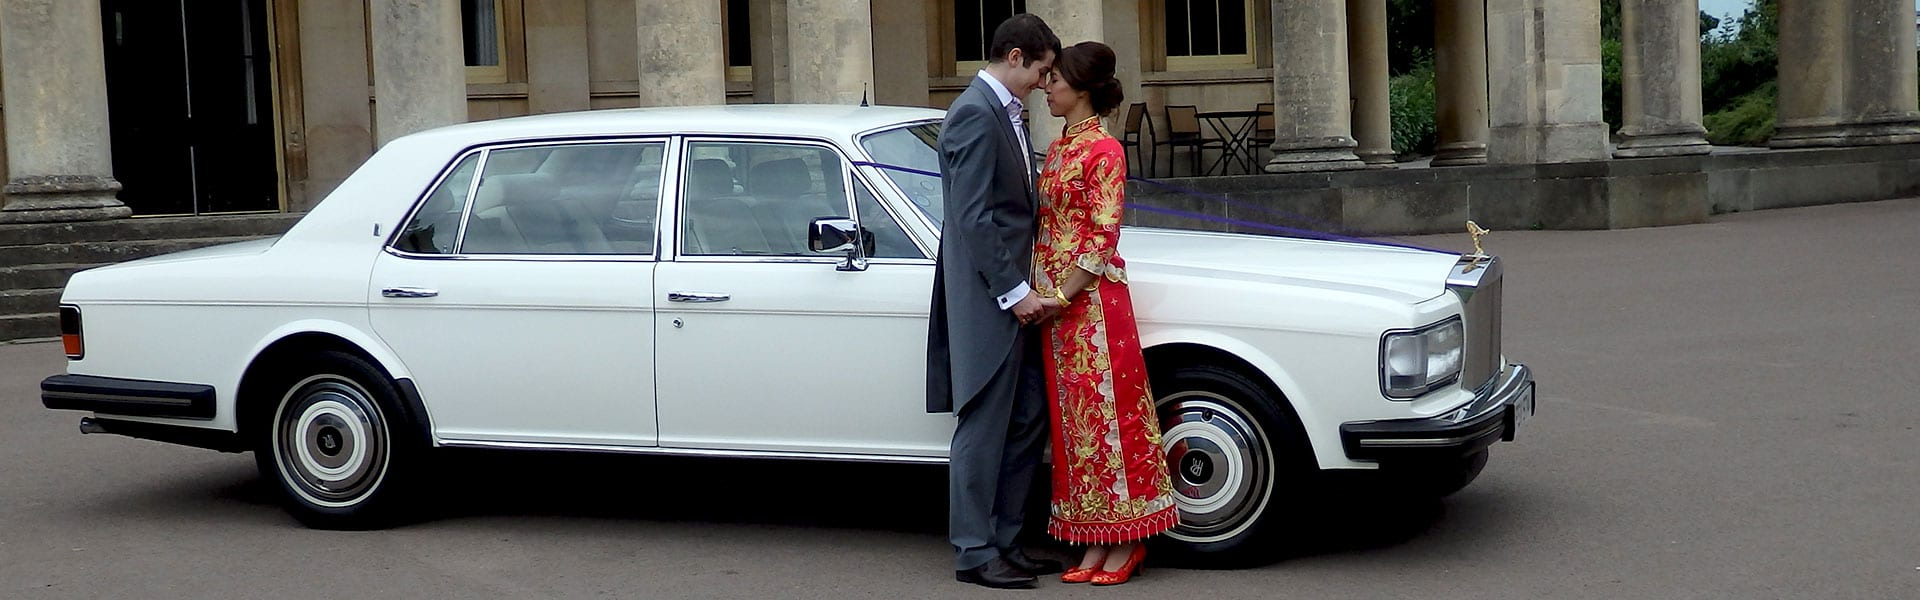 Rolls-Royce-Silver-Spur-Wedding-Car-hero-3